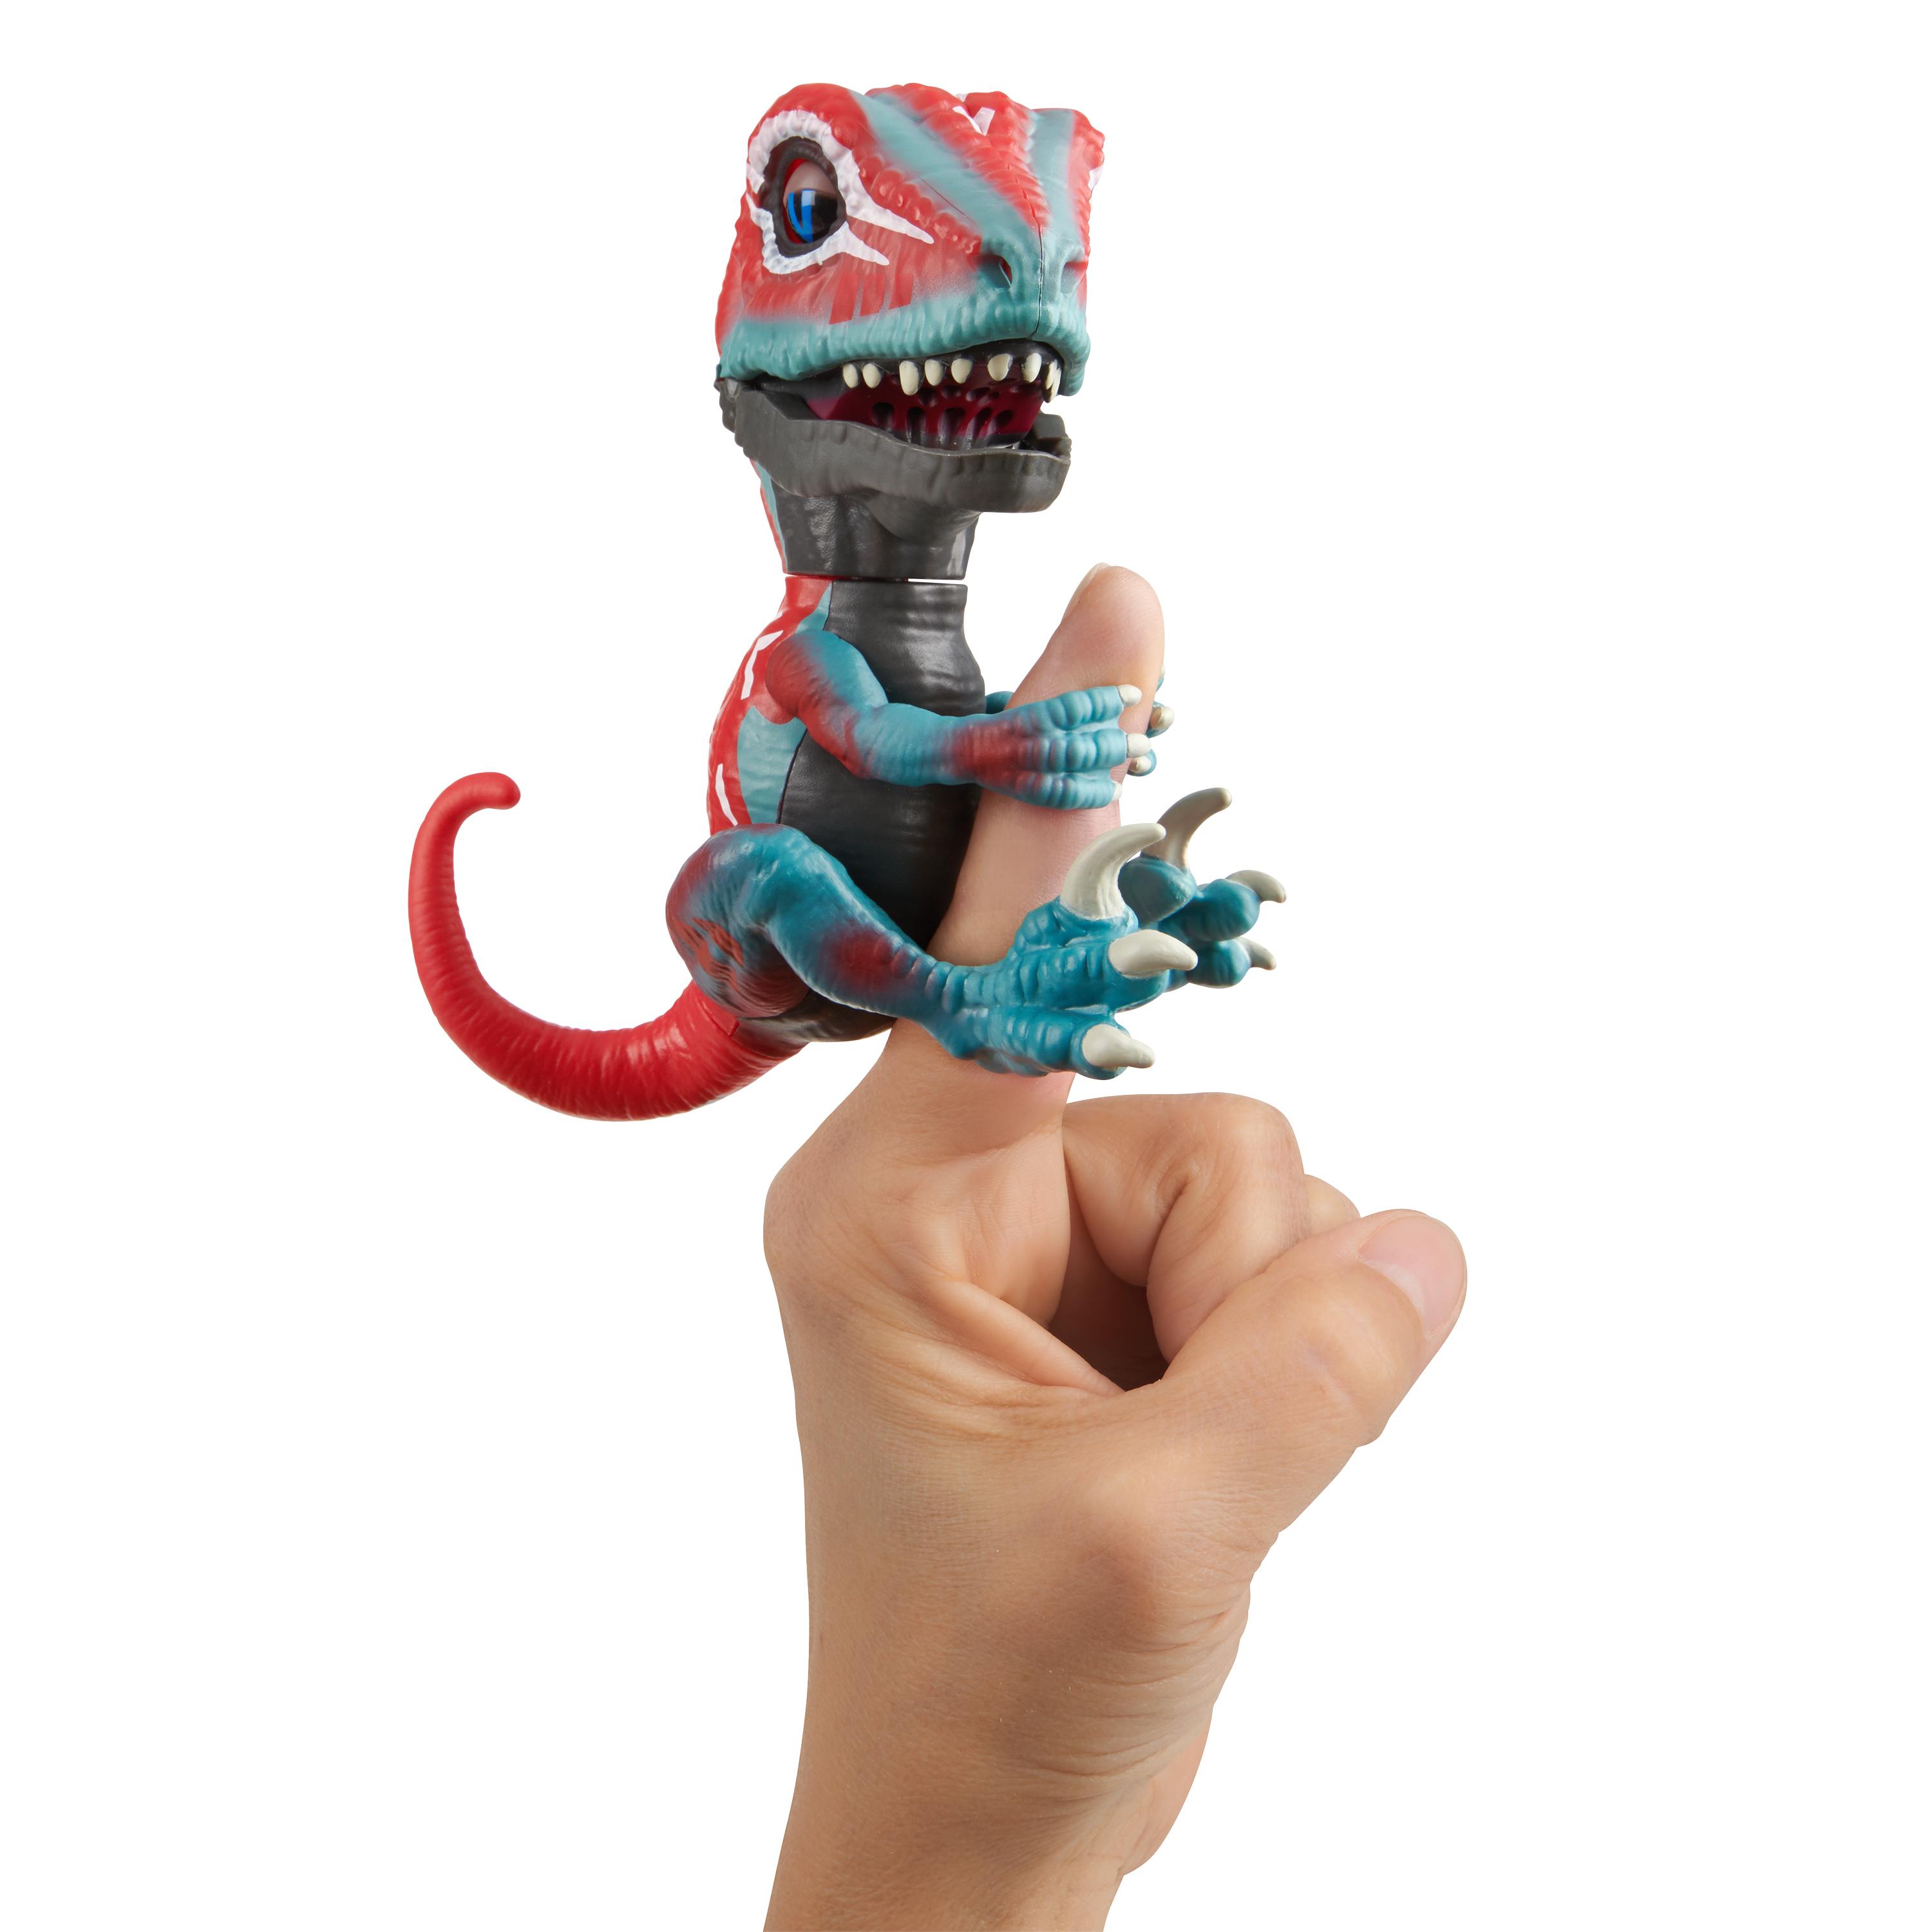 Untamed Raptor - Series 2- by Fingerlings - Mutant (Red and Blue) - Interactive Collectible Dinosaur - By WowWee